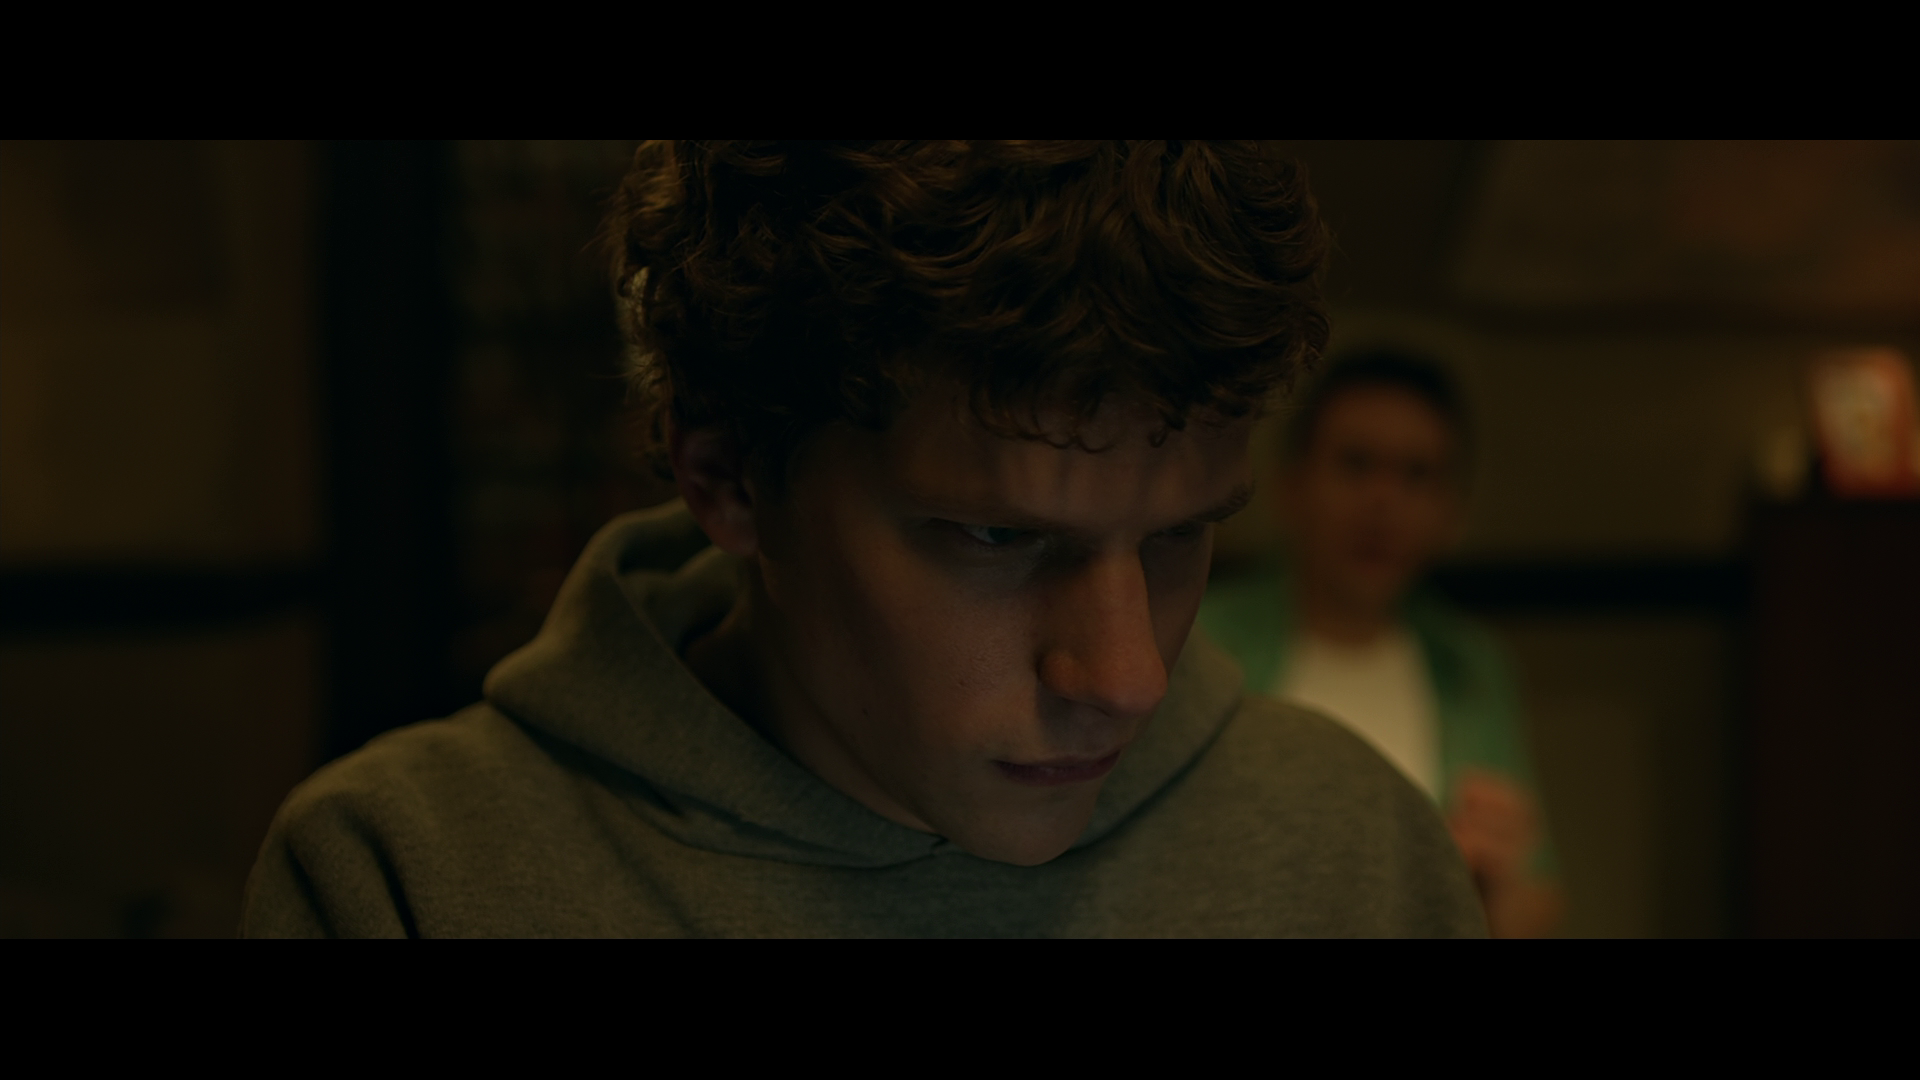 an analysis of the social network a movie by david fincher Read matt's the social network review, which is part of his david fincher  retrospective in the lead up to the director's new film, gone girl.